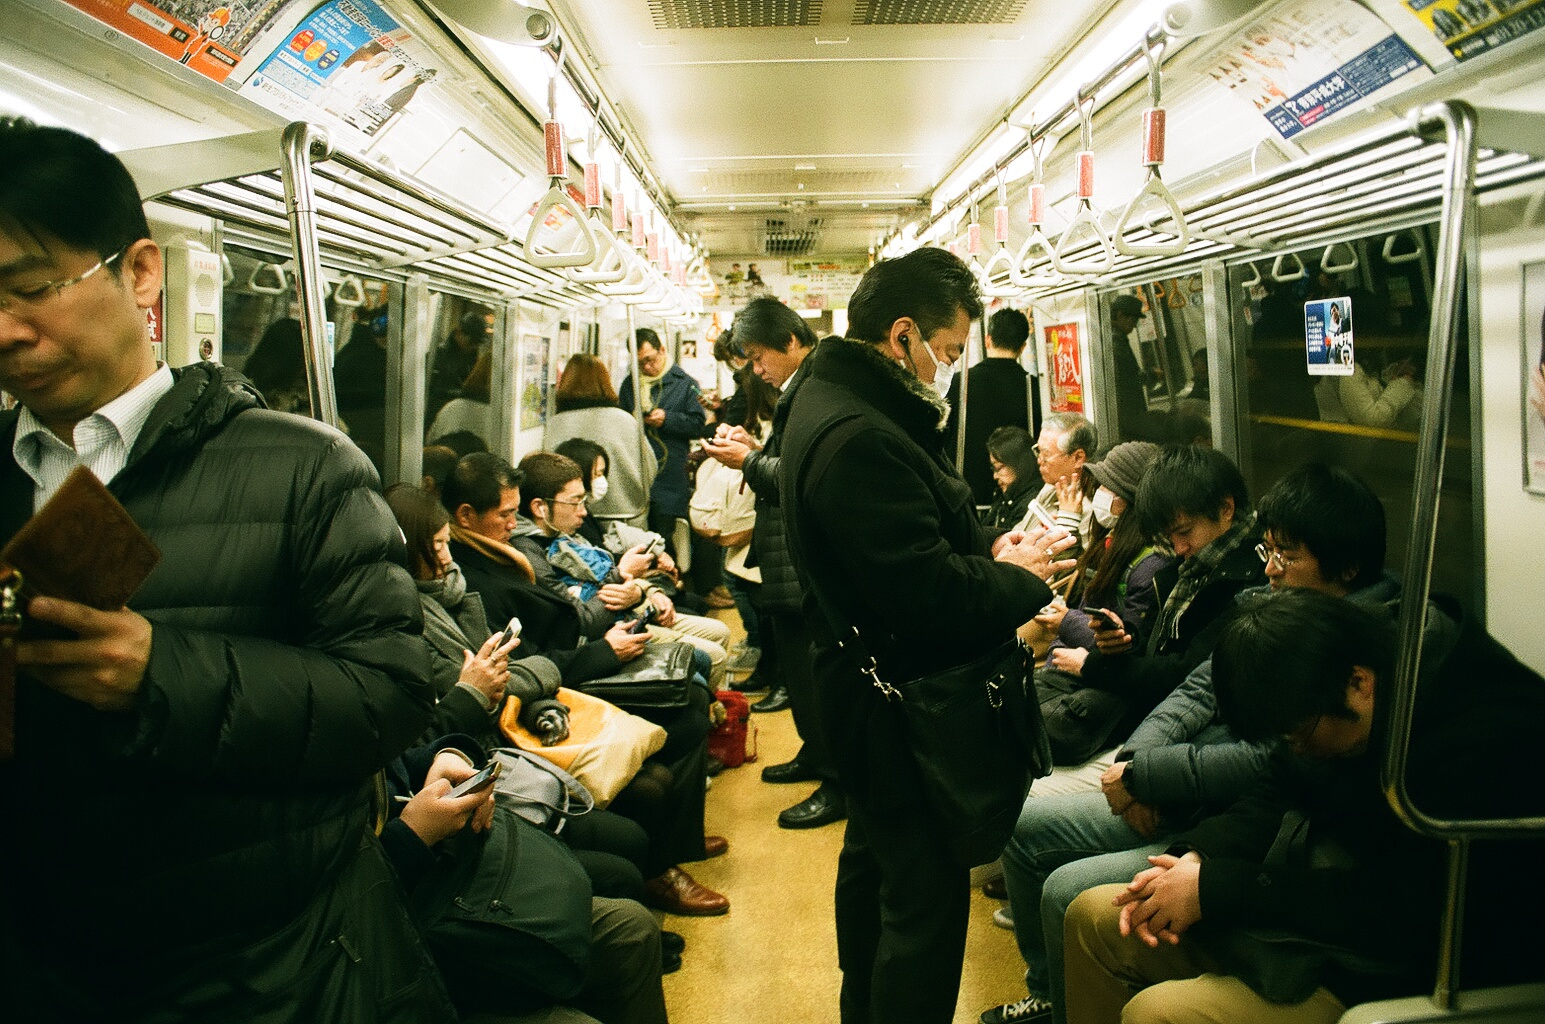 Everybody in Japan were on their phones, especially on the train.